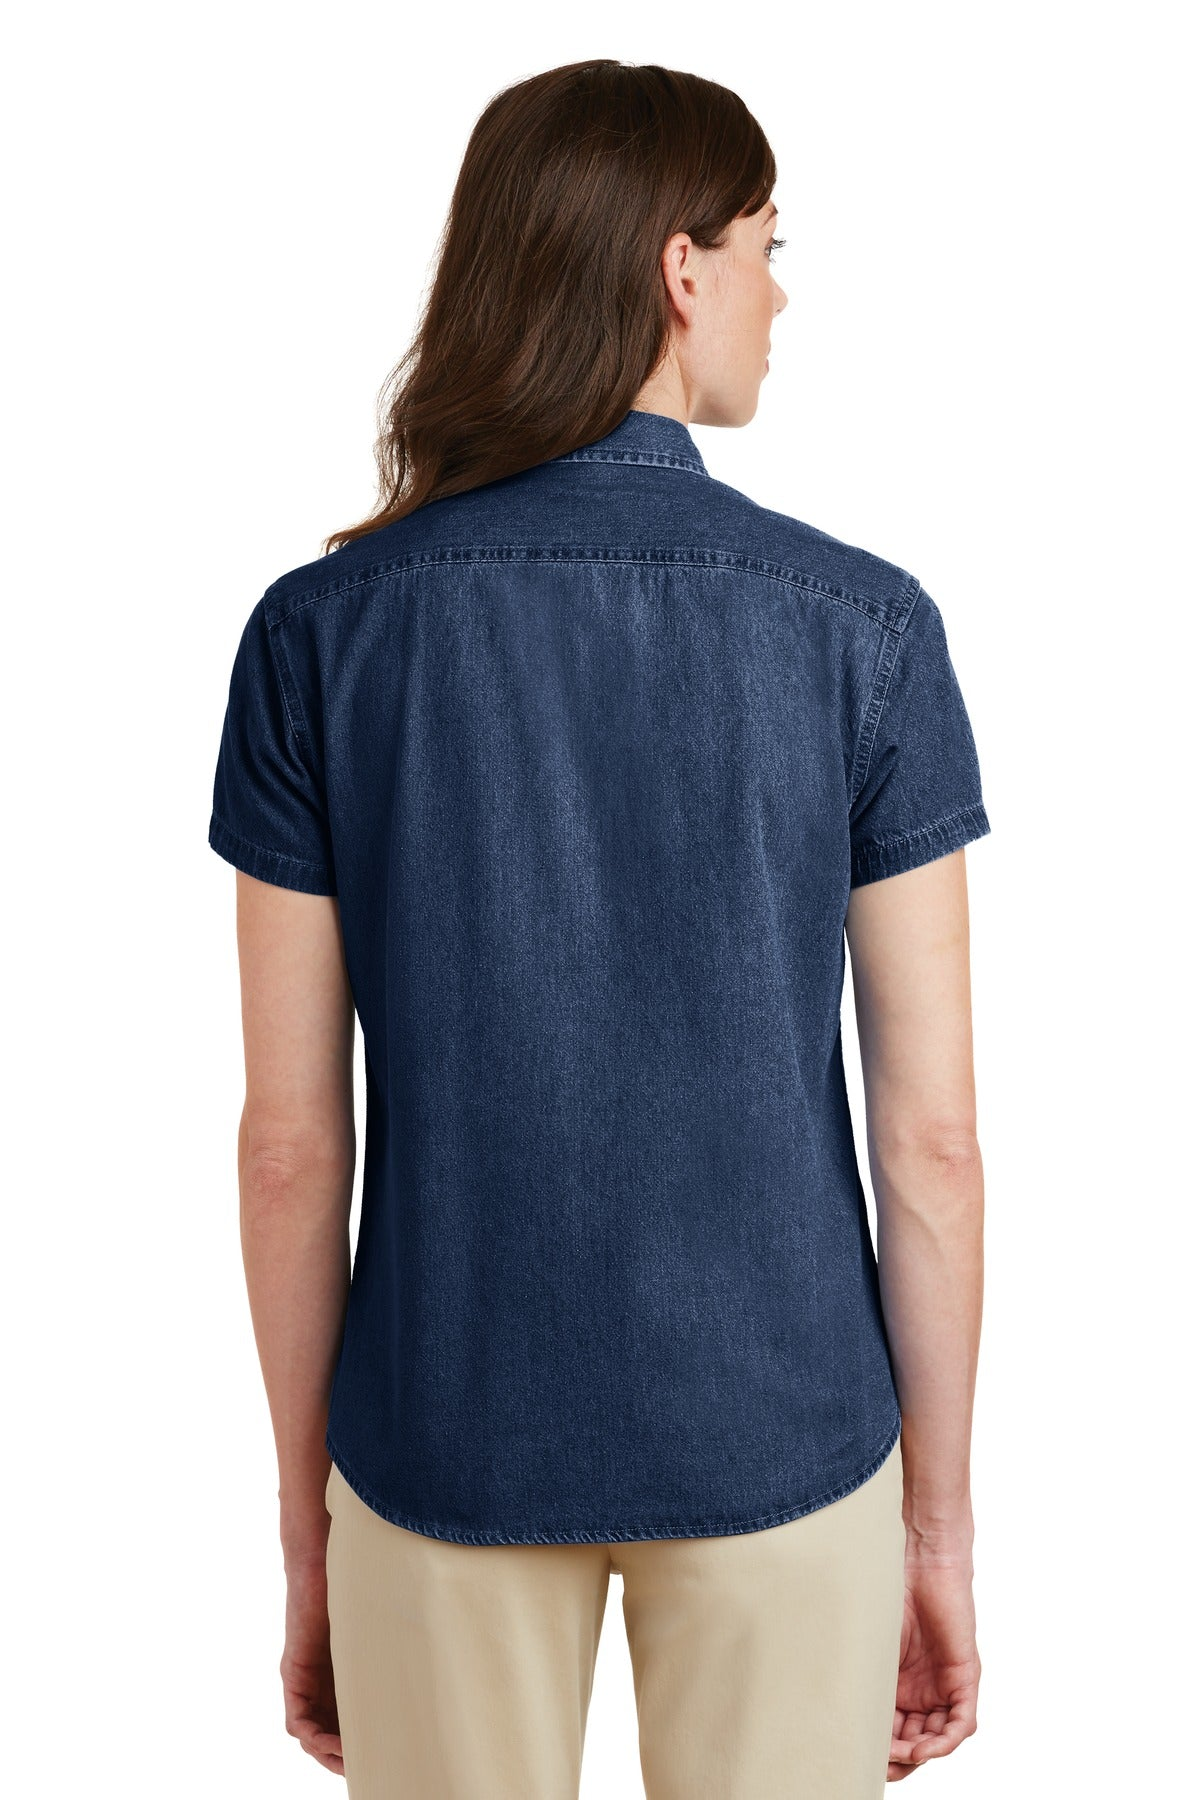 Women's Company Logo Shirts | Denim Button Downs – Lead Apparel